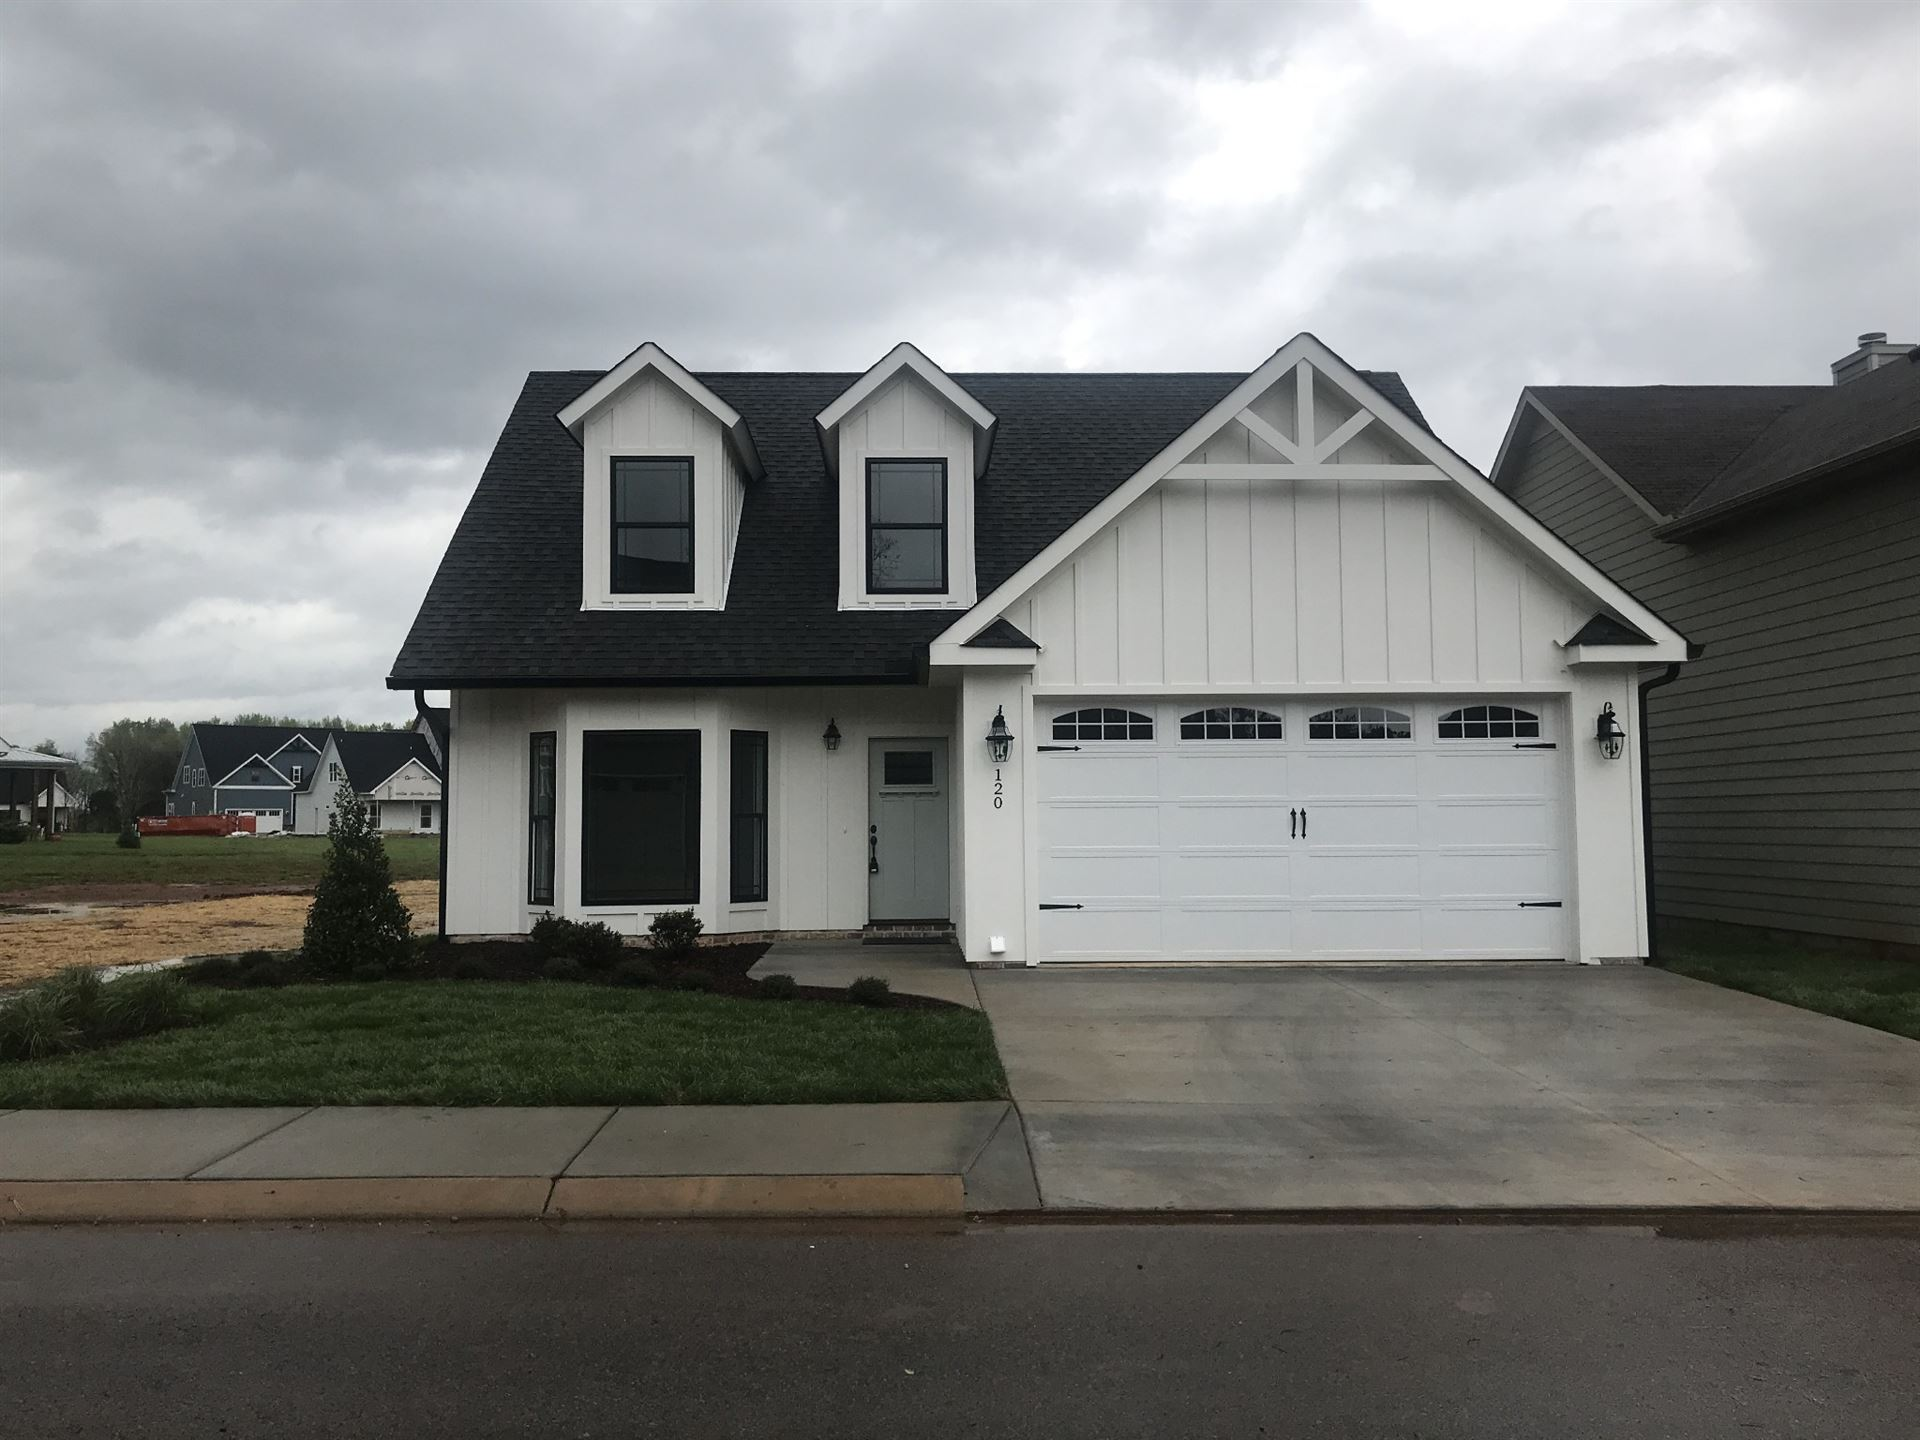 120 Dry Fork Dr, Winchester, TN 37398 - MLS#: 2231524